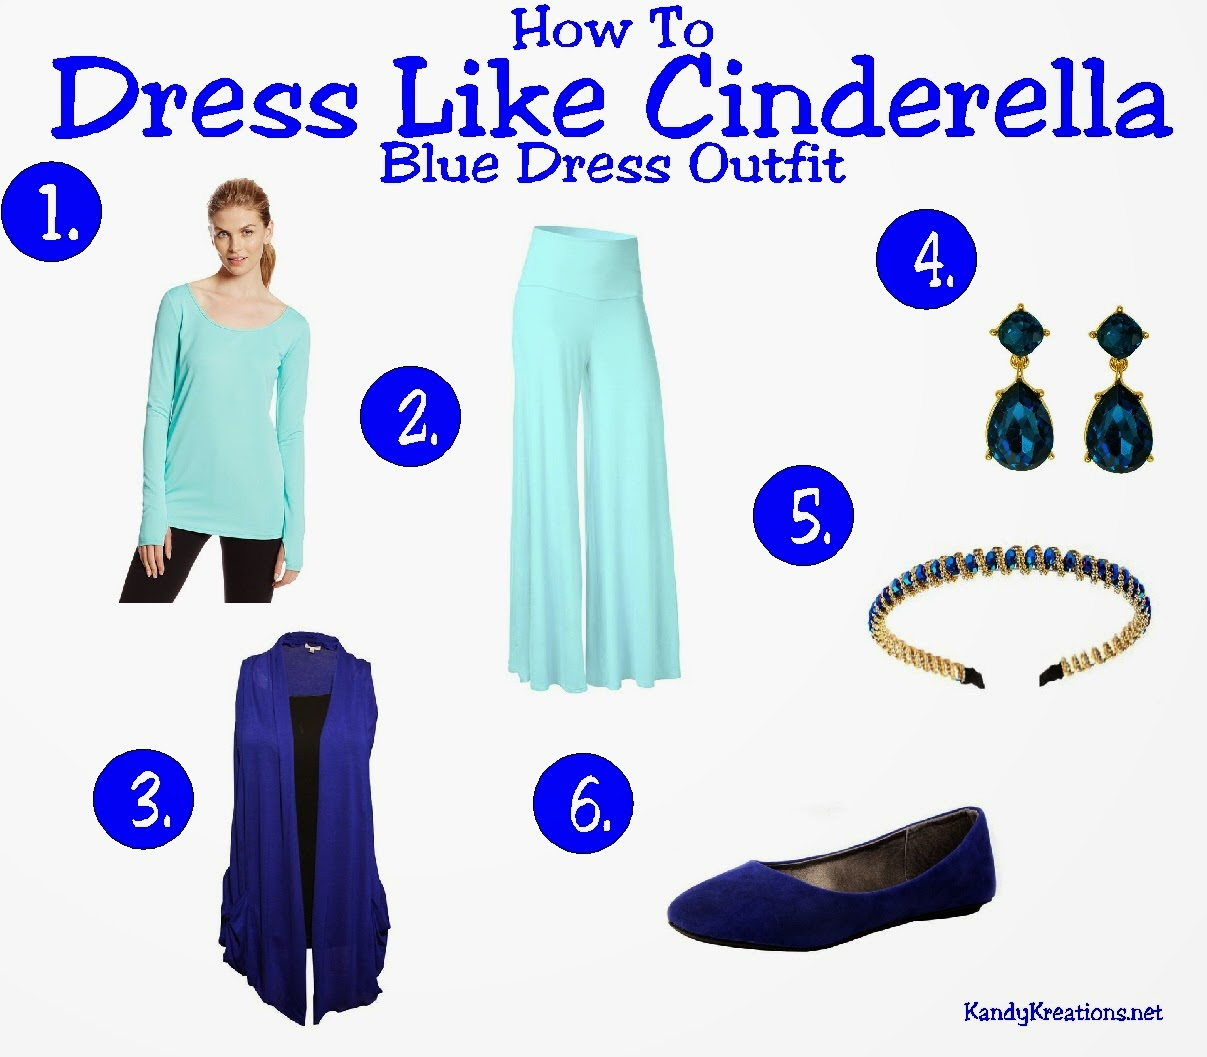 How to dress like Cinderella in her Blue Dress by KandyKreations